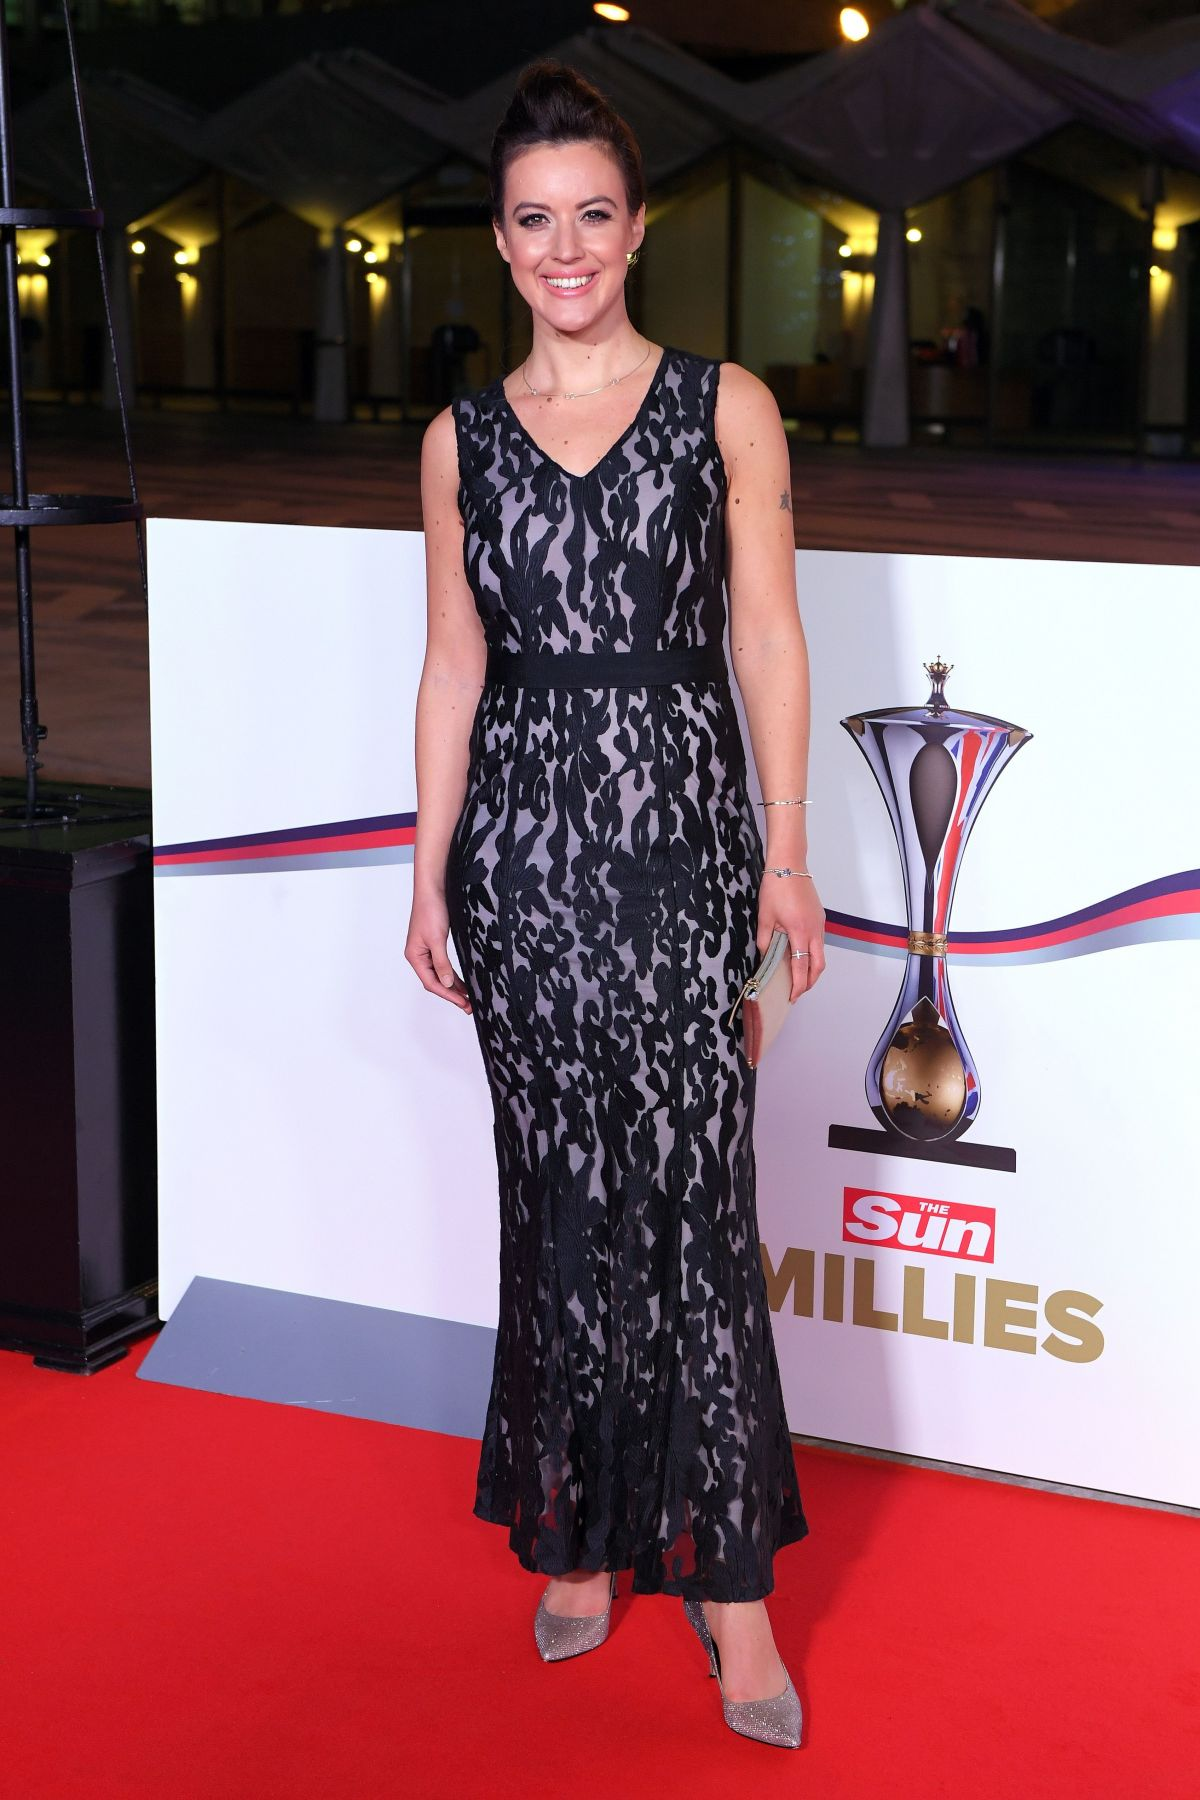 CHARLIE WEBSTER at The Sun Military Awards in London 12/14/2016